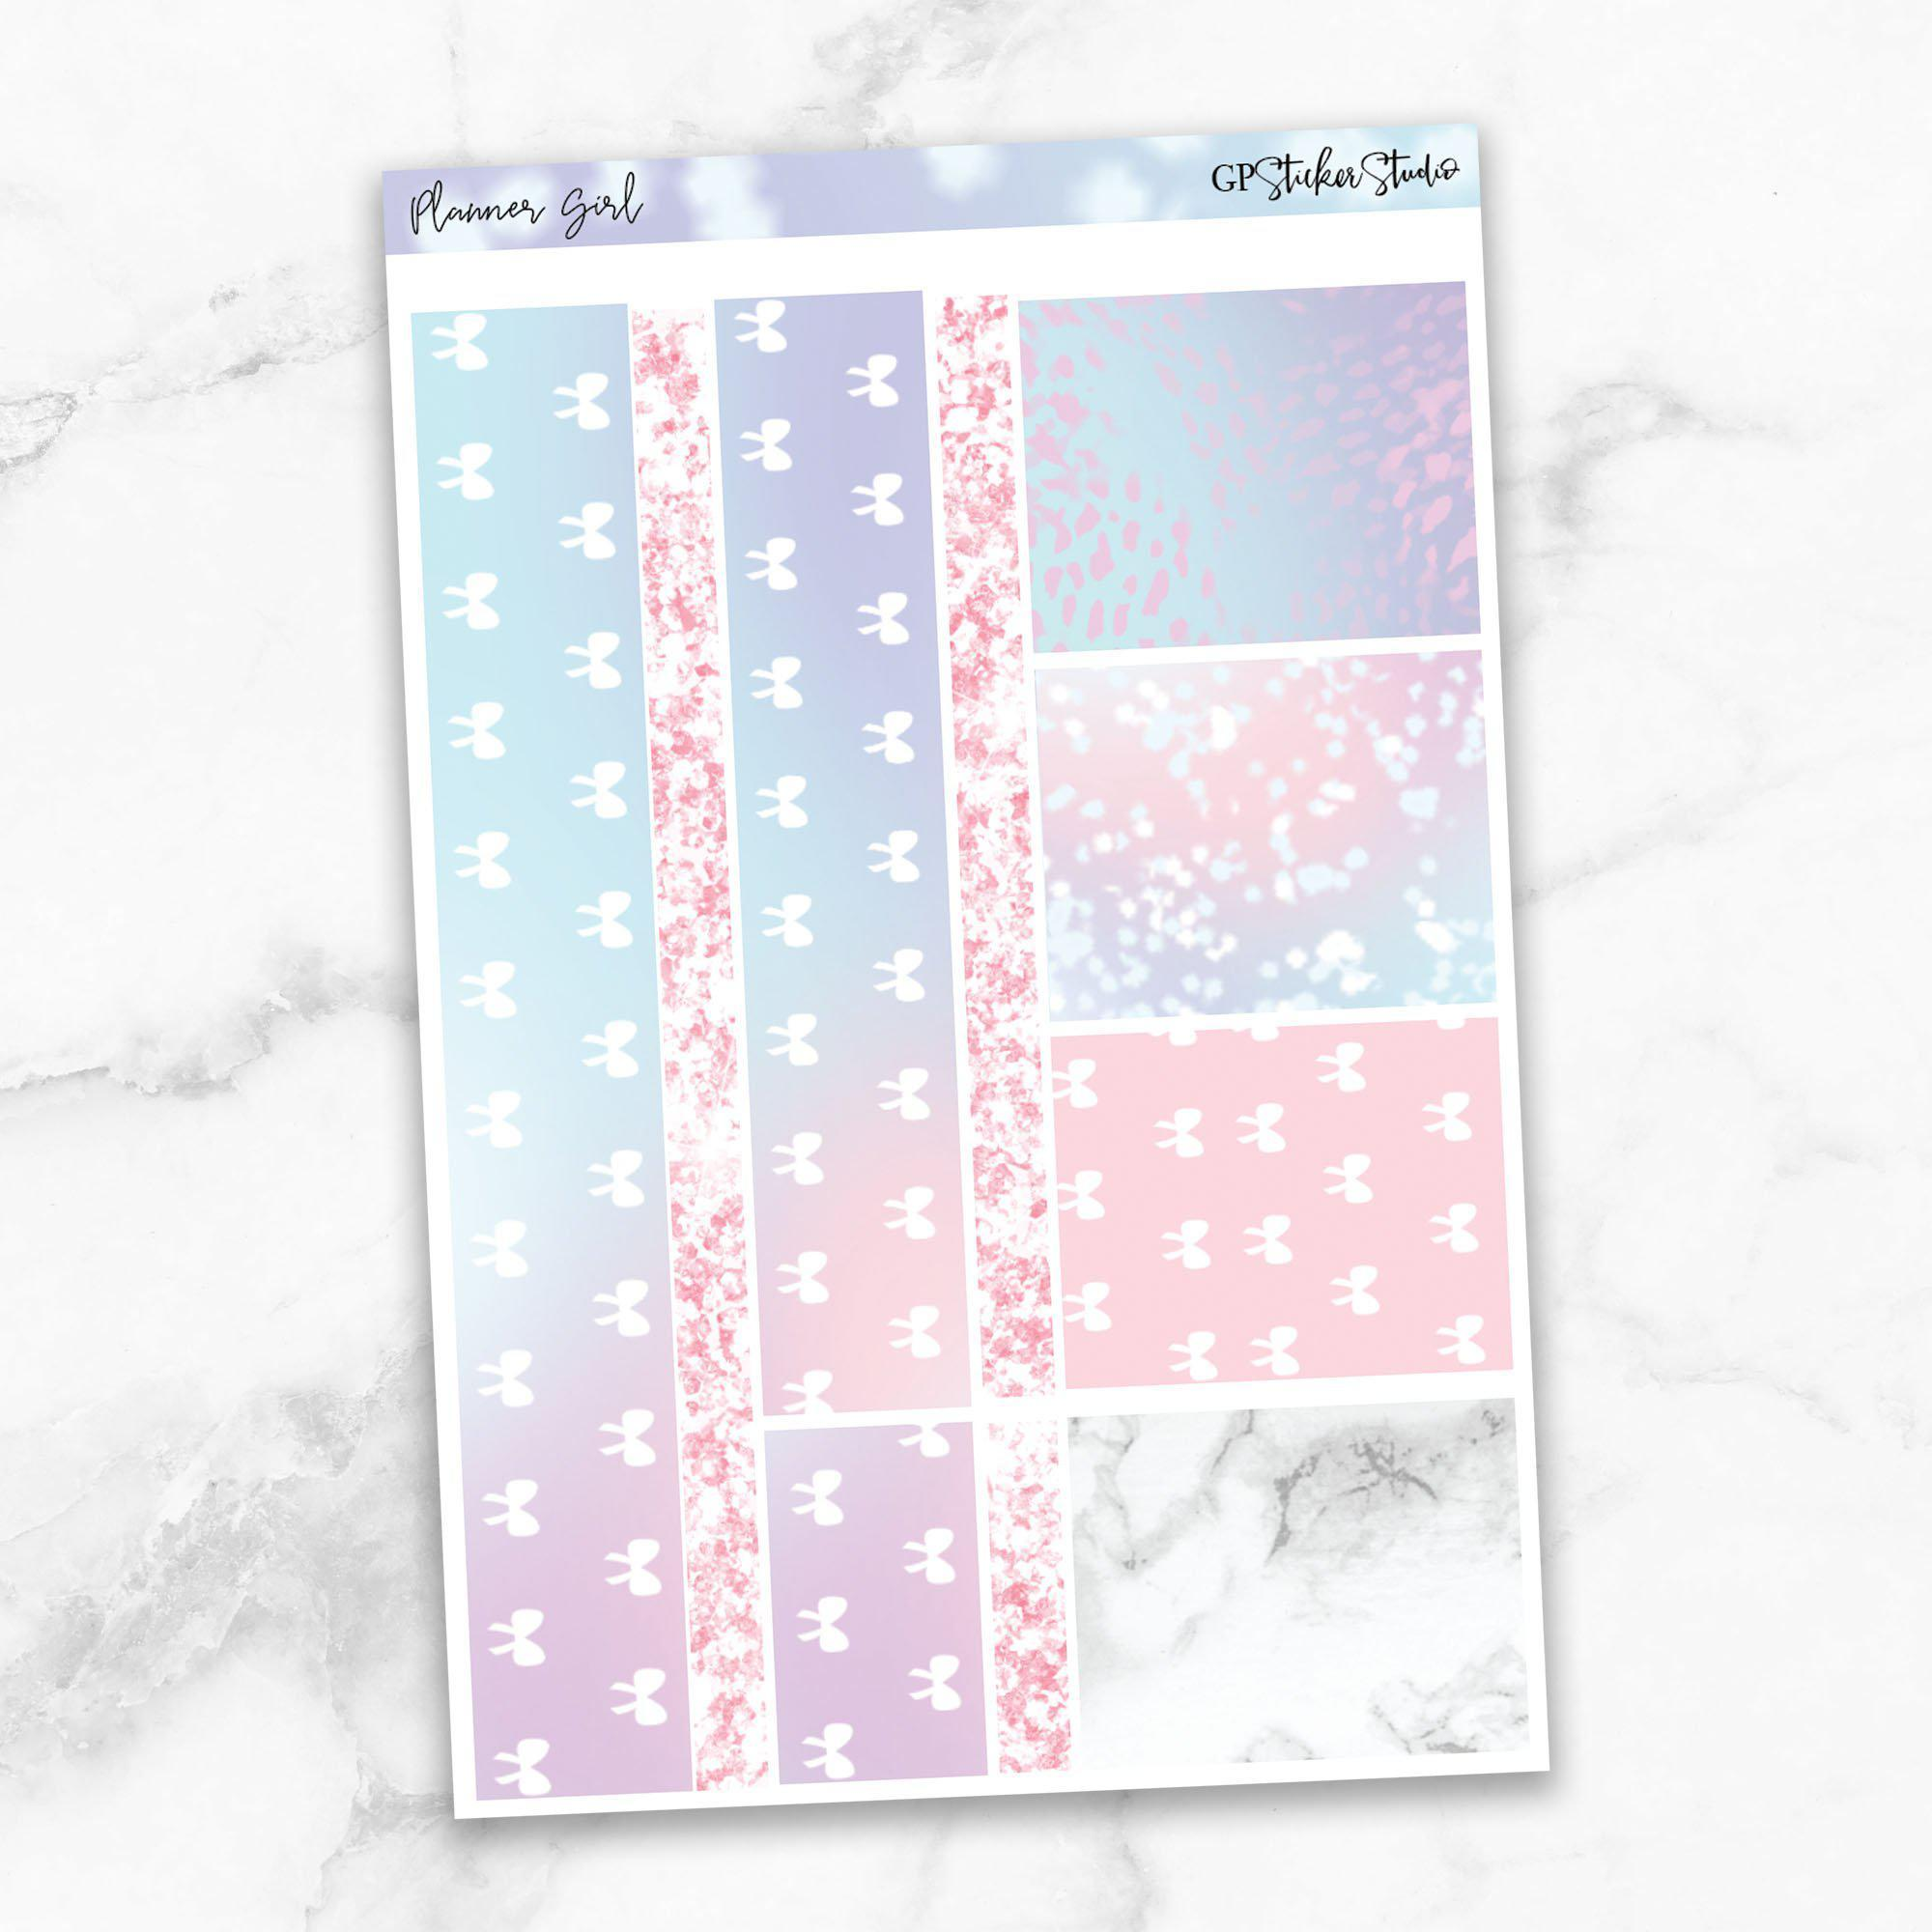 PLANNER GIRL Washi Sheet Stickers-The GP Studio